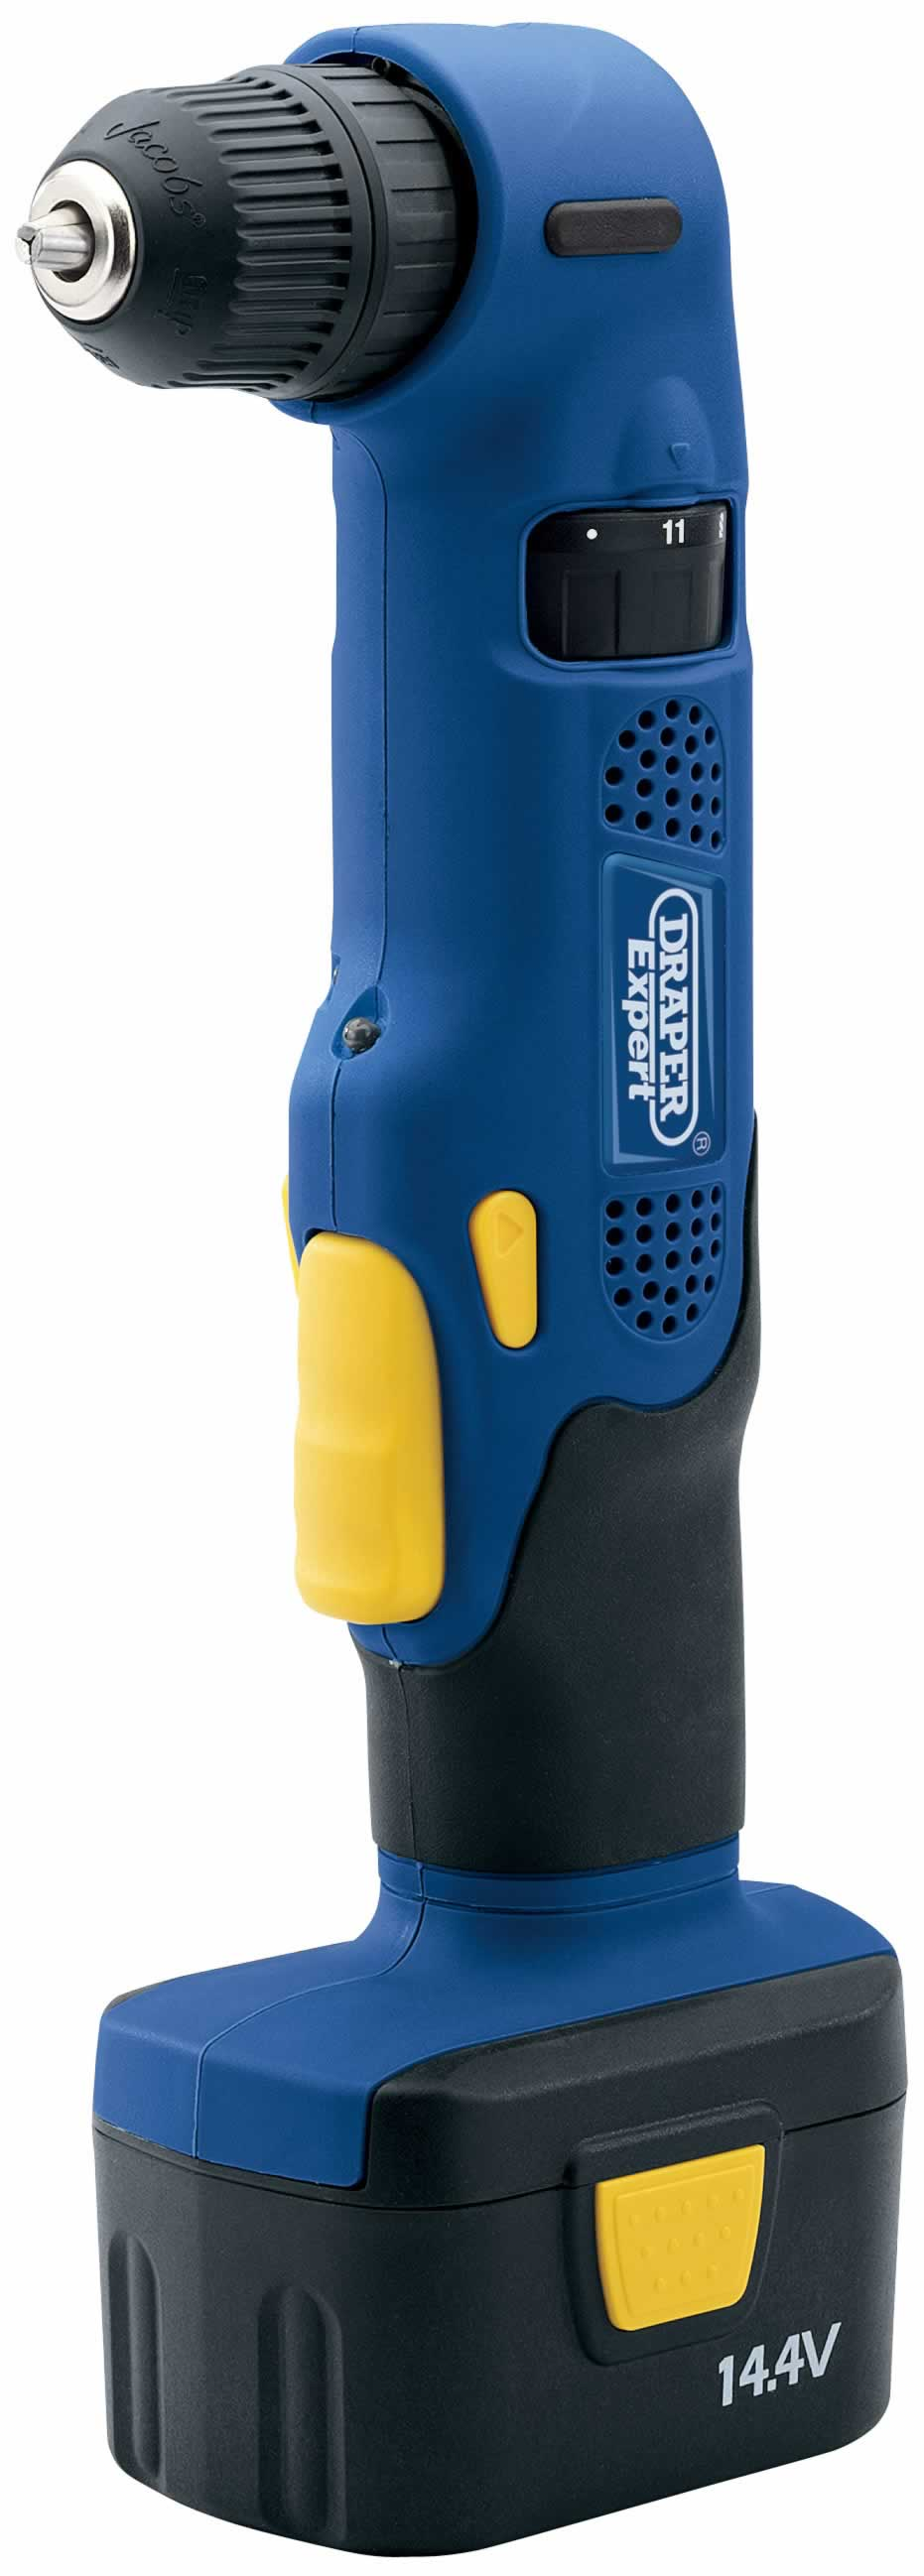 EXPERT 14.4V CORDLESS ANGLE DRILL/DRIVER WITH ONE NI-CD BATTERY  (AHA)